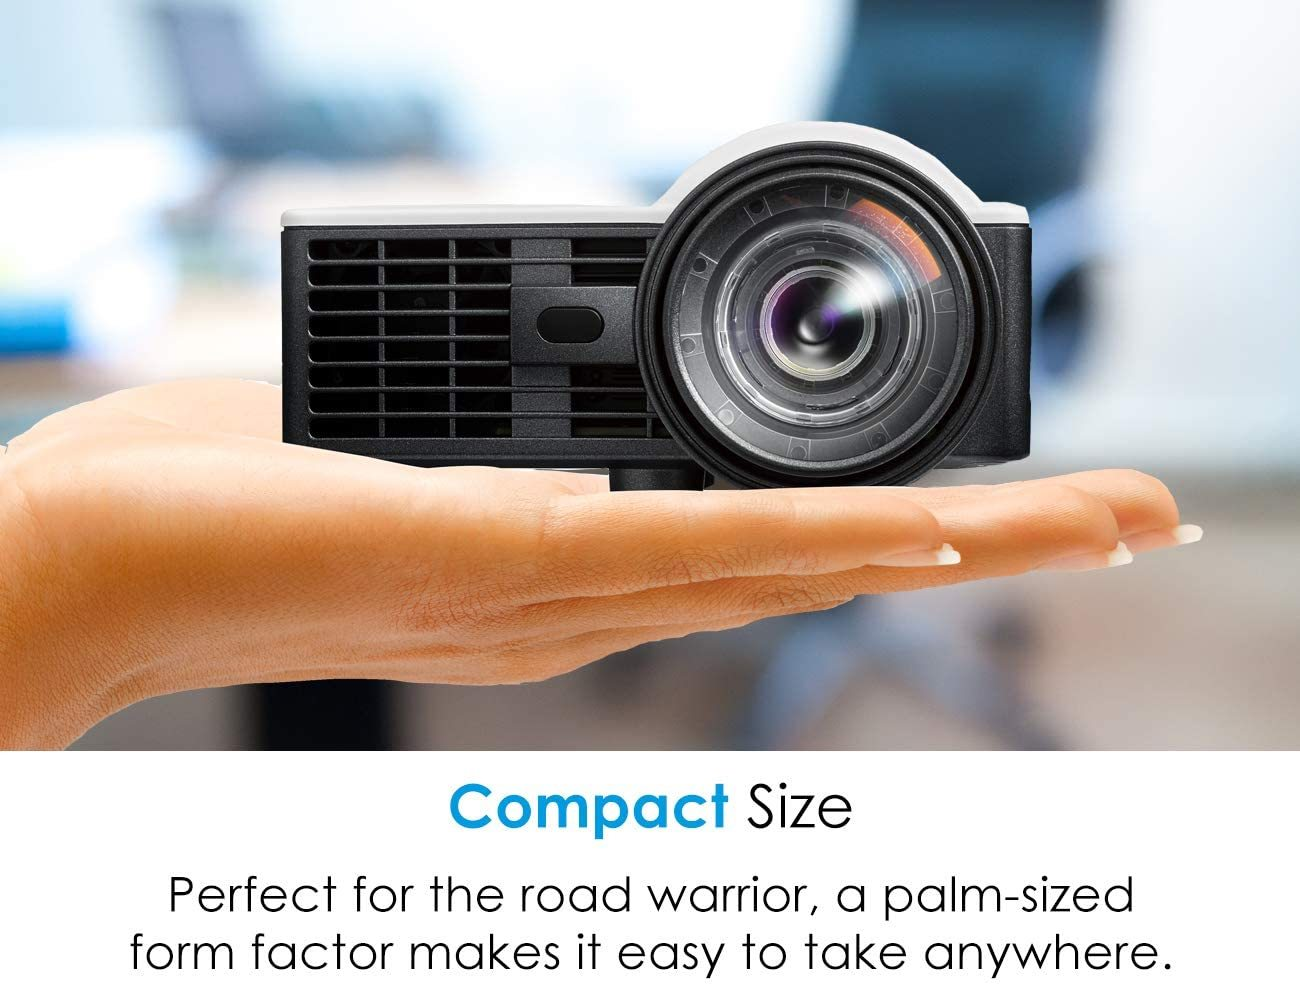 Portable LED WUXGA Support Mini Projector with Short Throw and Auto Focus for Office Presentations and Movies at Home